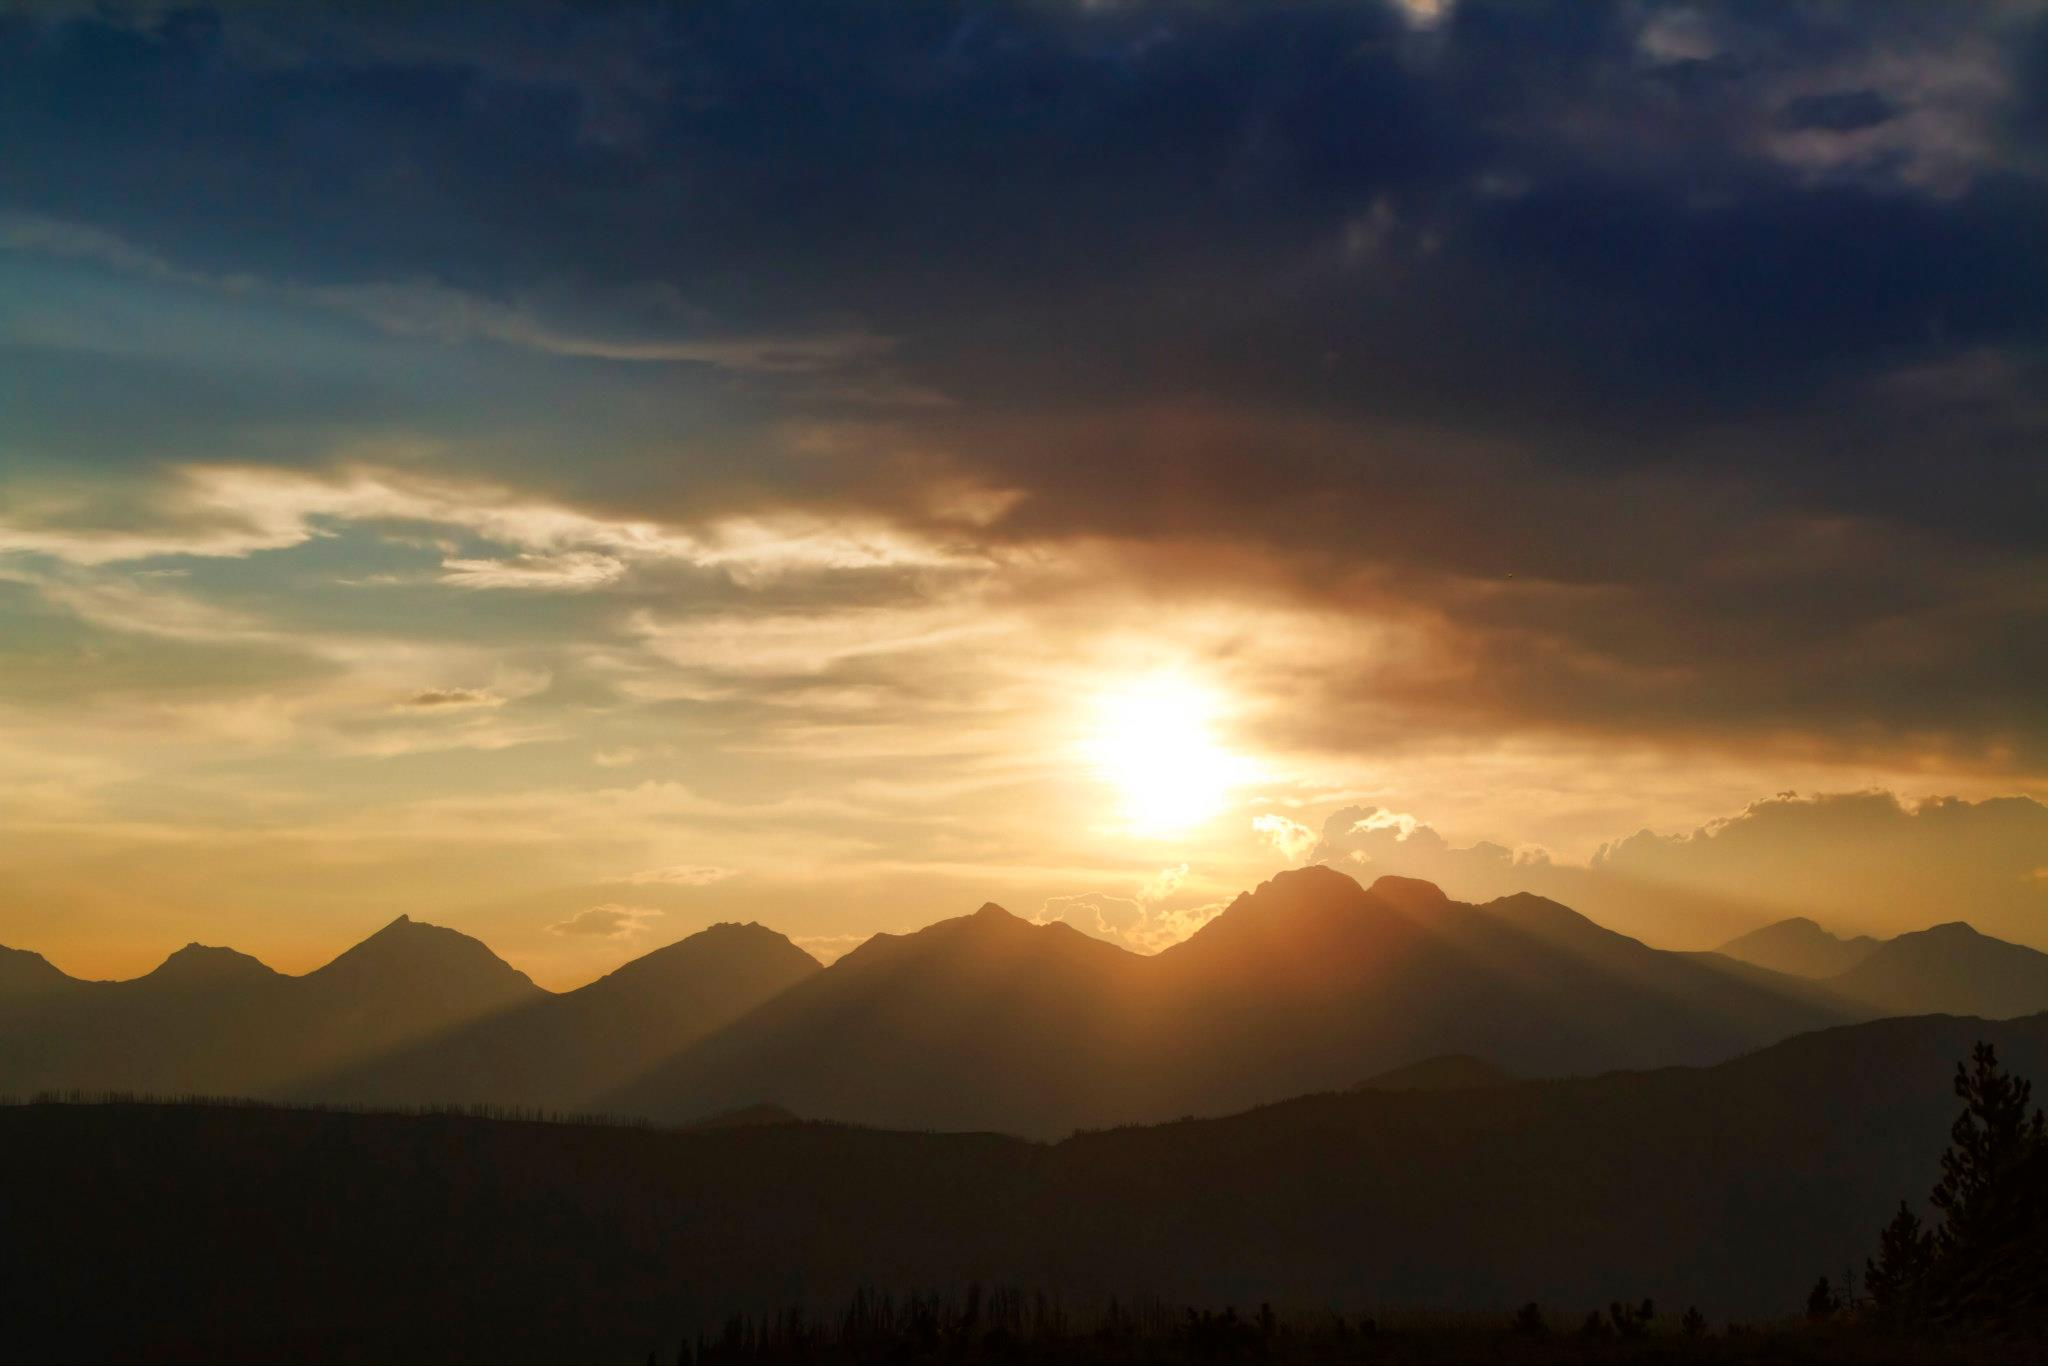 Sunset in the Rockies